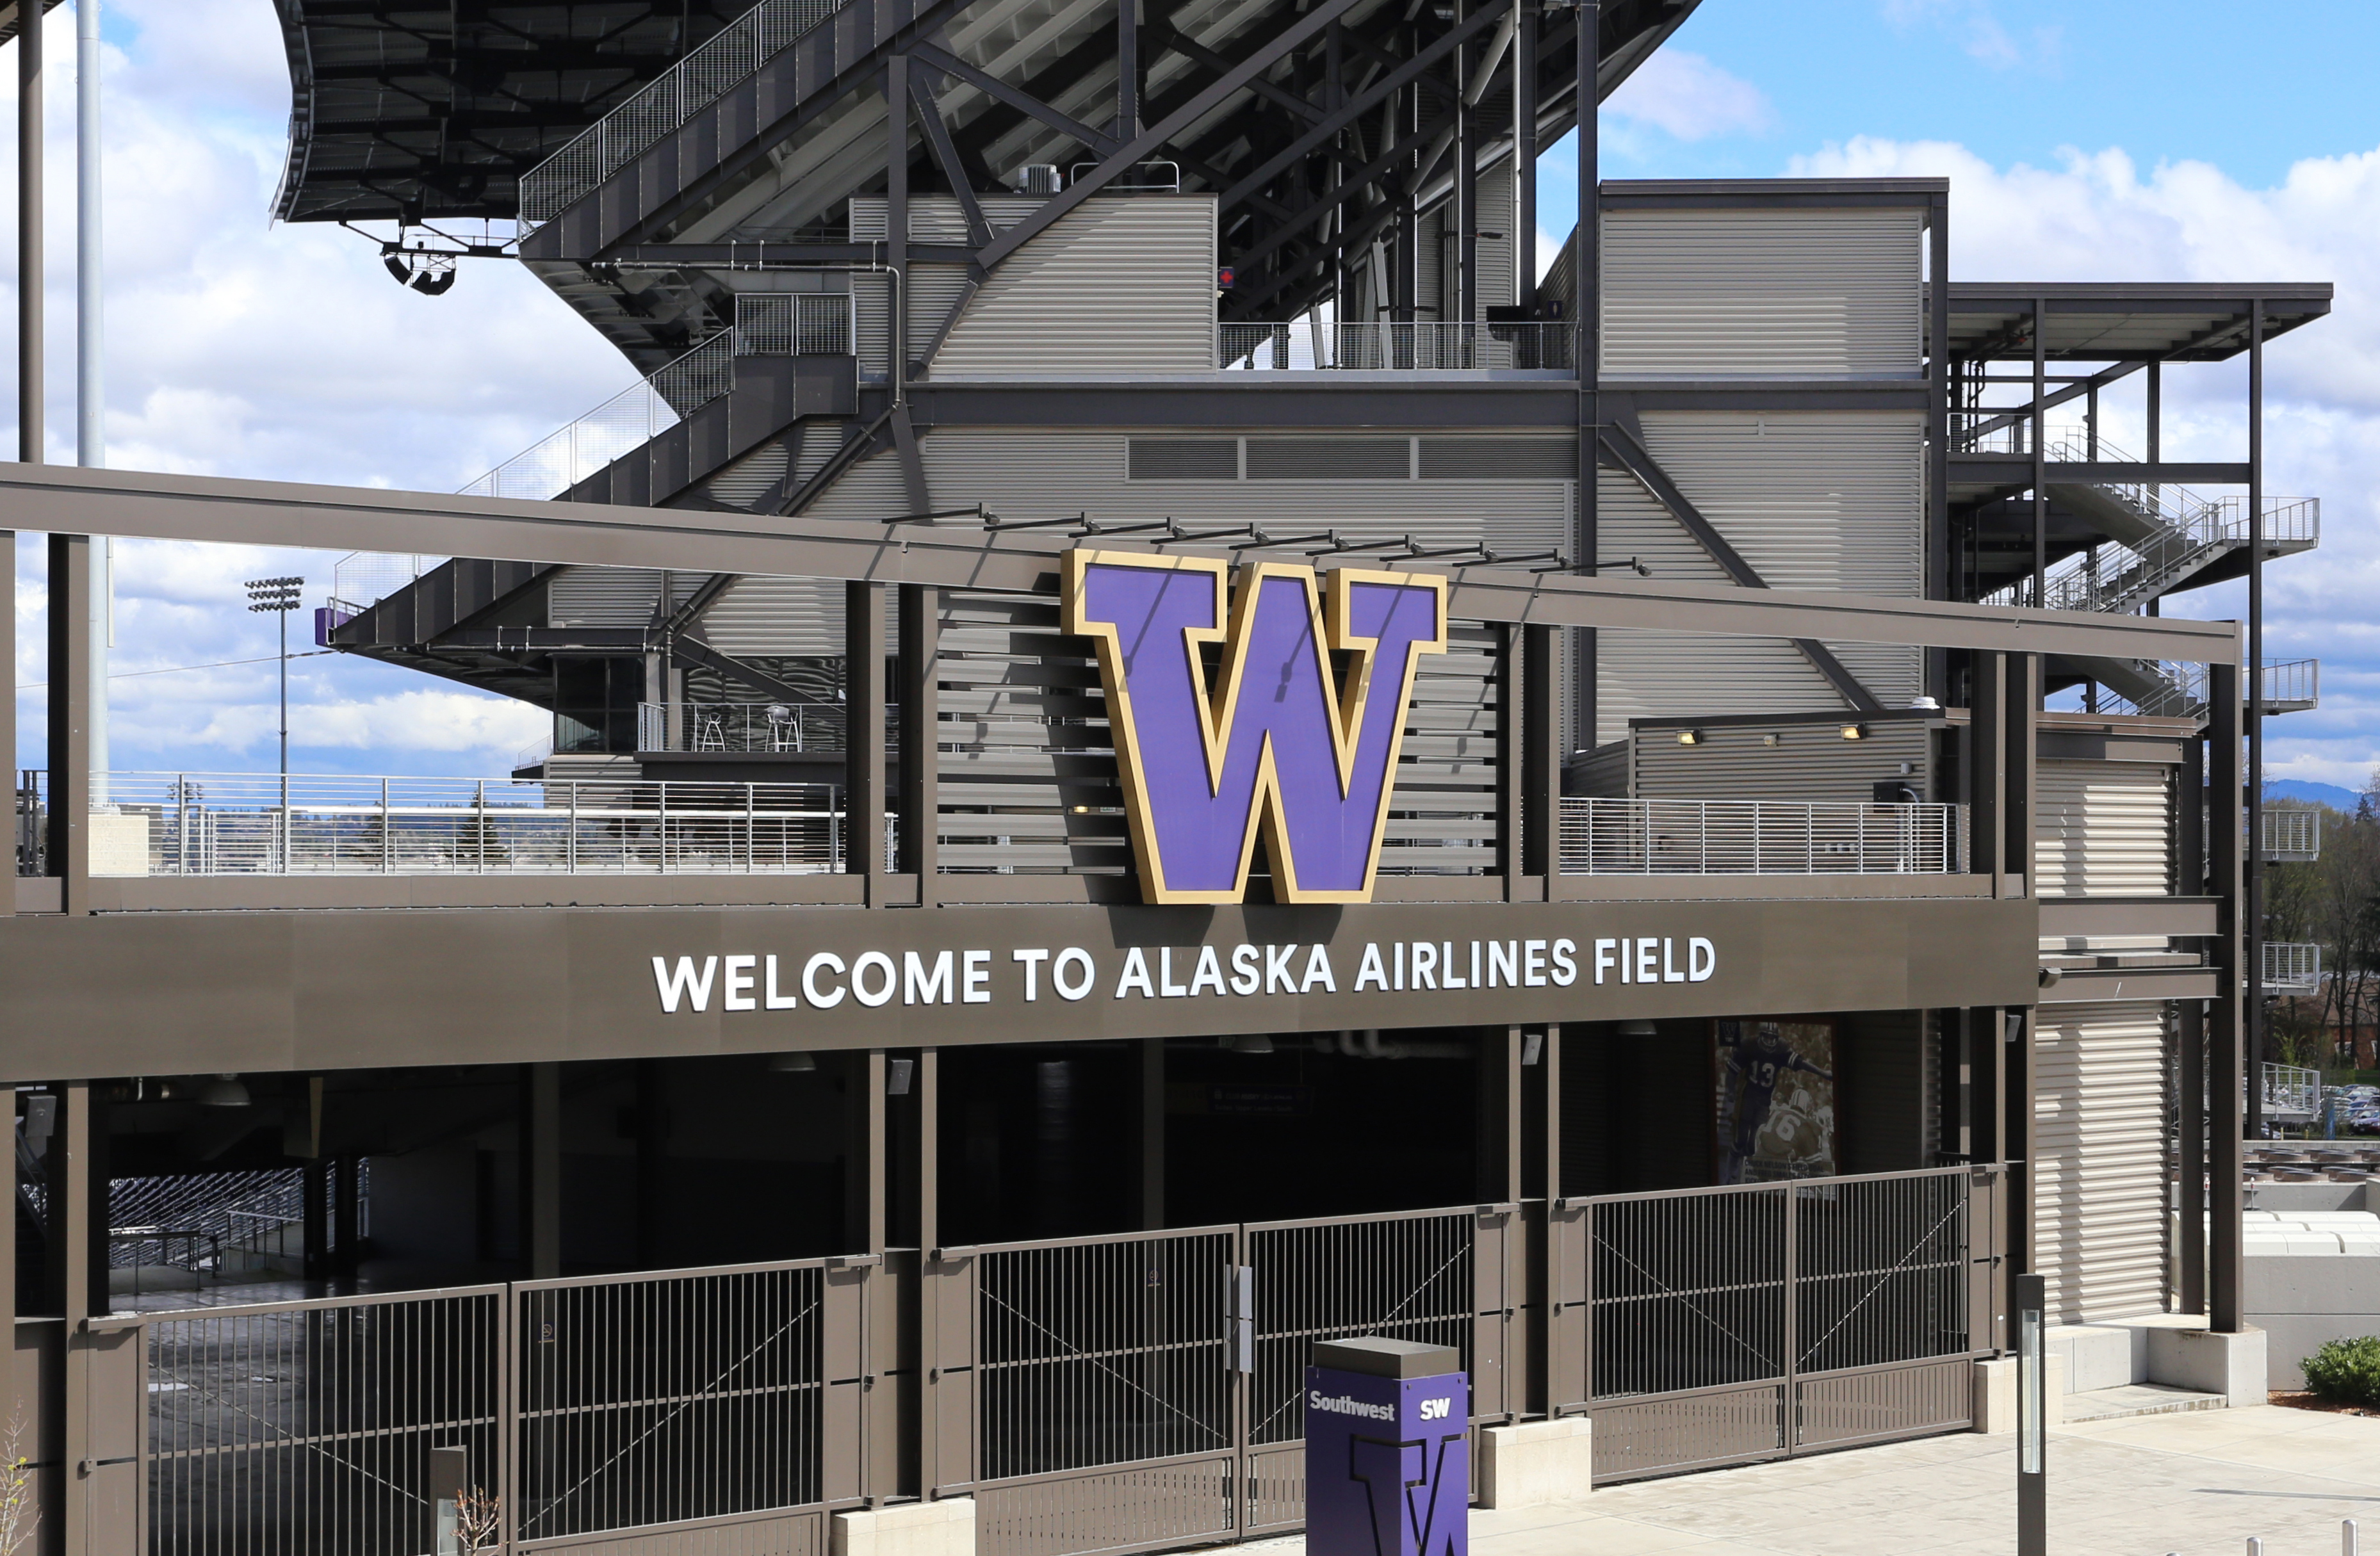 """The exterior of Husky Stadium, which has the school's purple """"W"""" logo out front along with a sign that says """"Welcome to Alaska Airlines Field"""""""